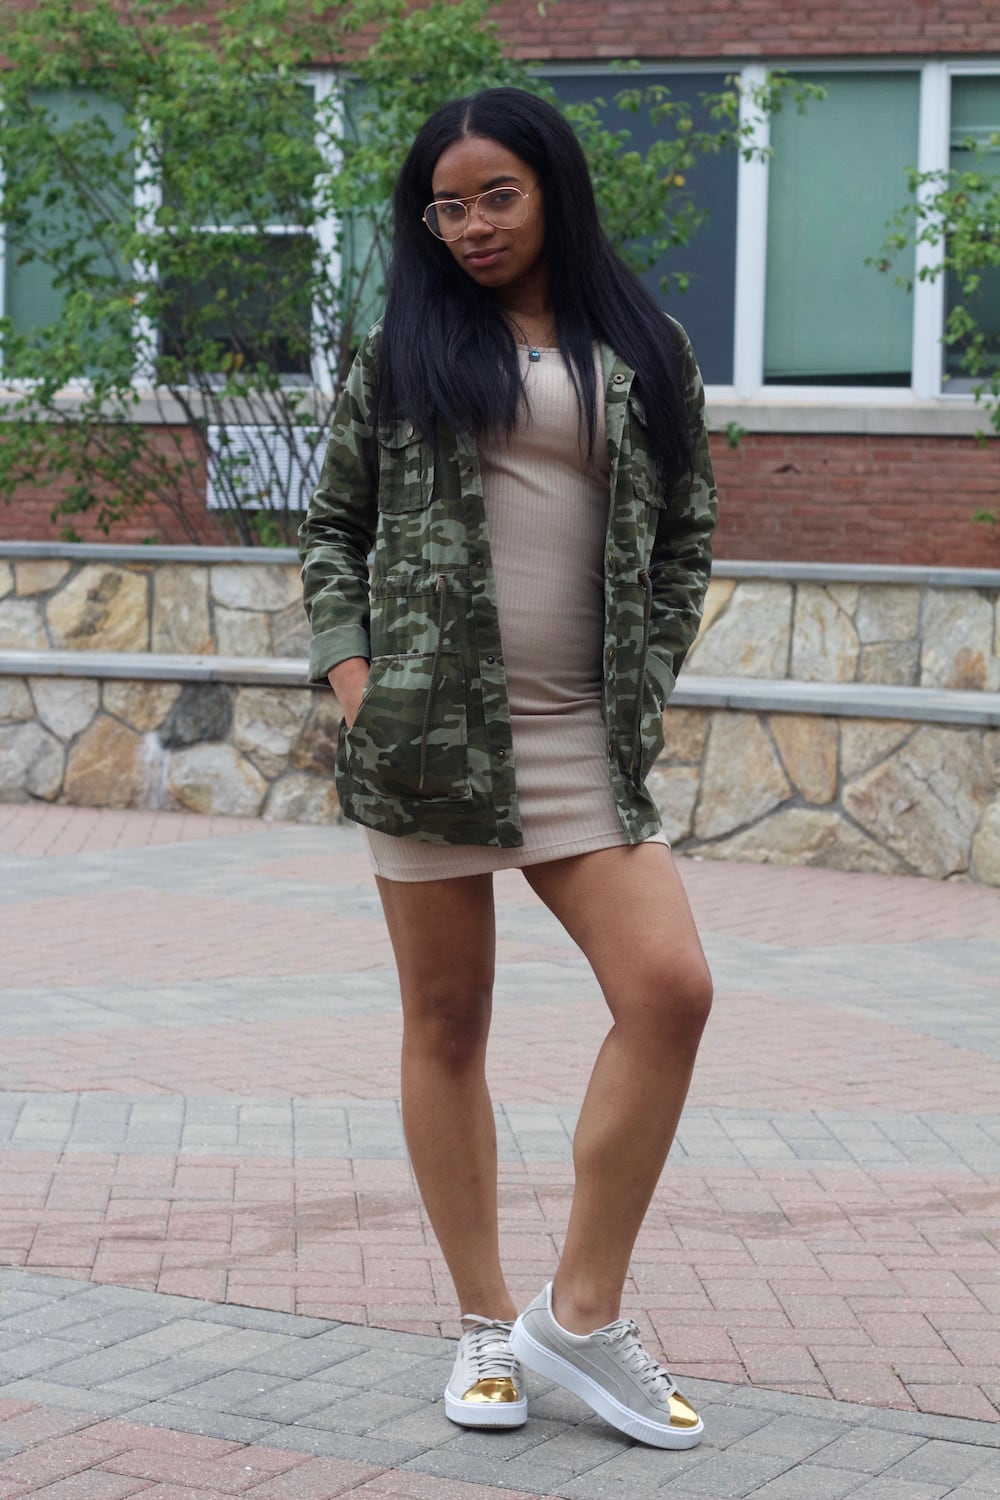 University of Bridgeport student wears a bodycon beige minidress with a camouflage military-inspired rain jacket and grey copper-toed sneakers. She accents her look with oversized glasses for hipster appeal.